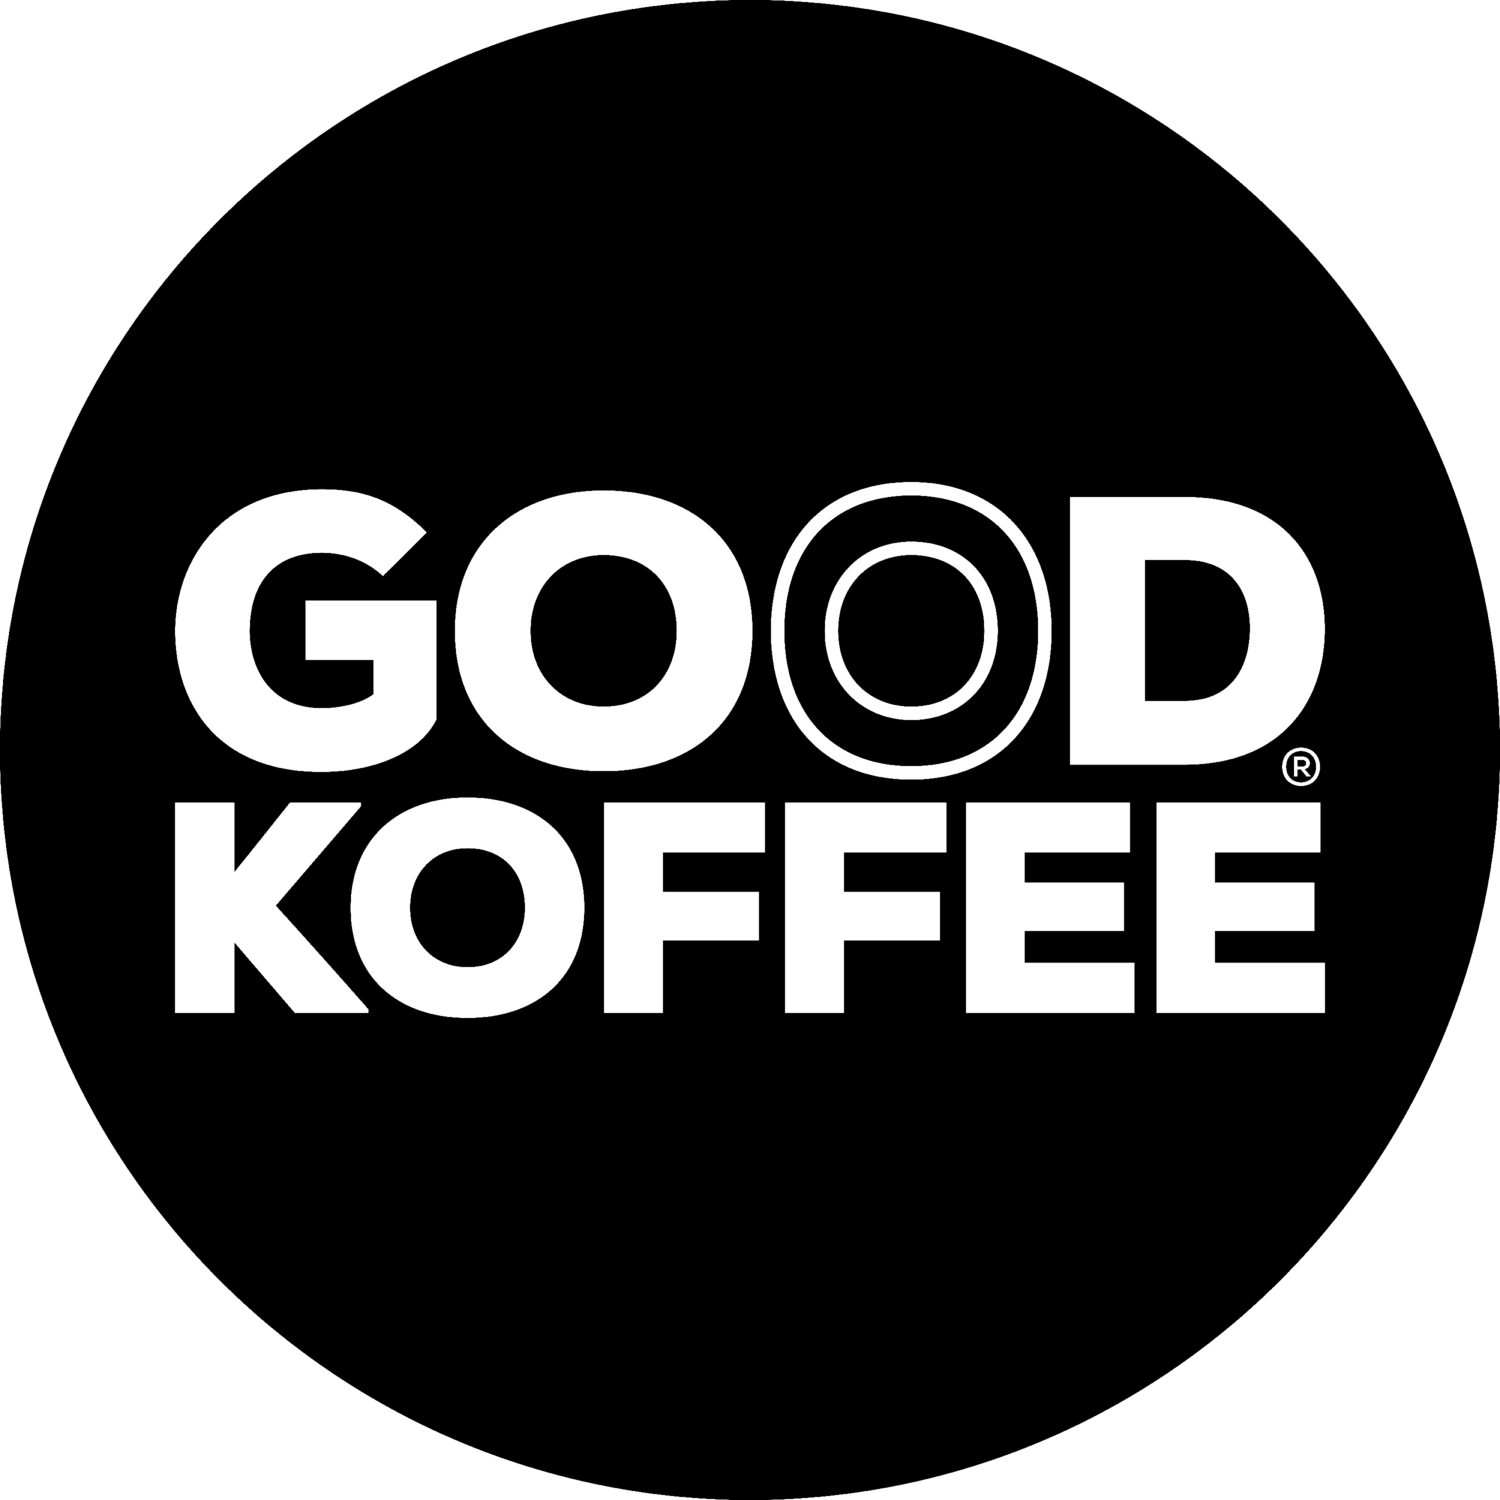 GOOD KOFFEE